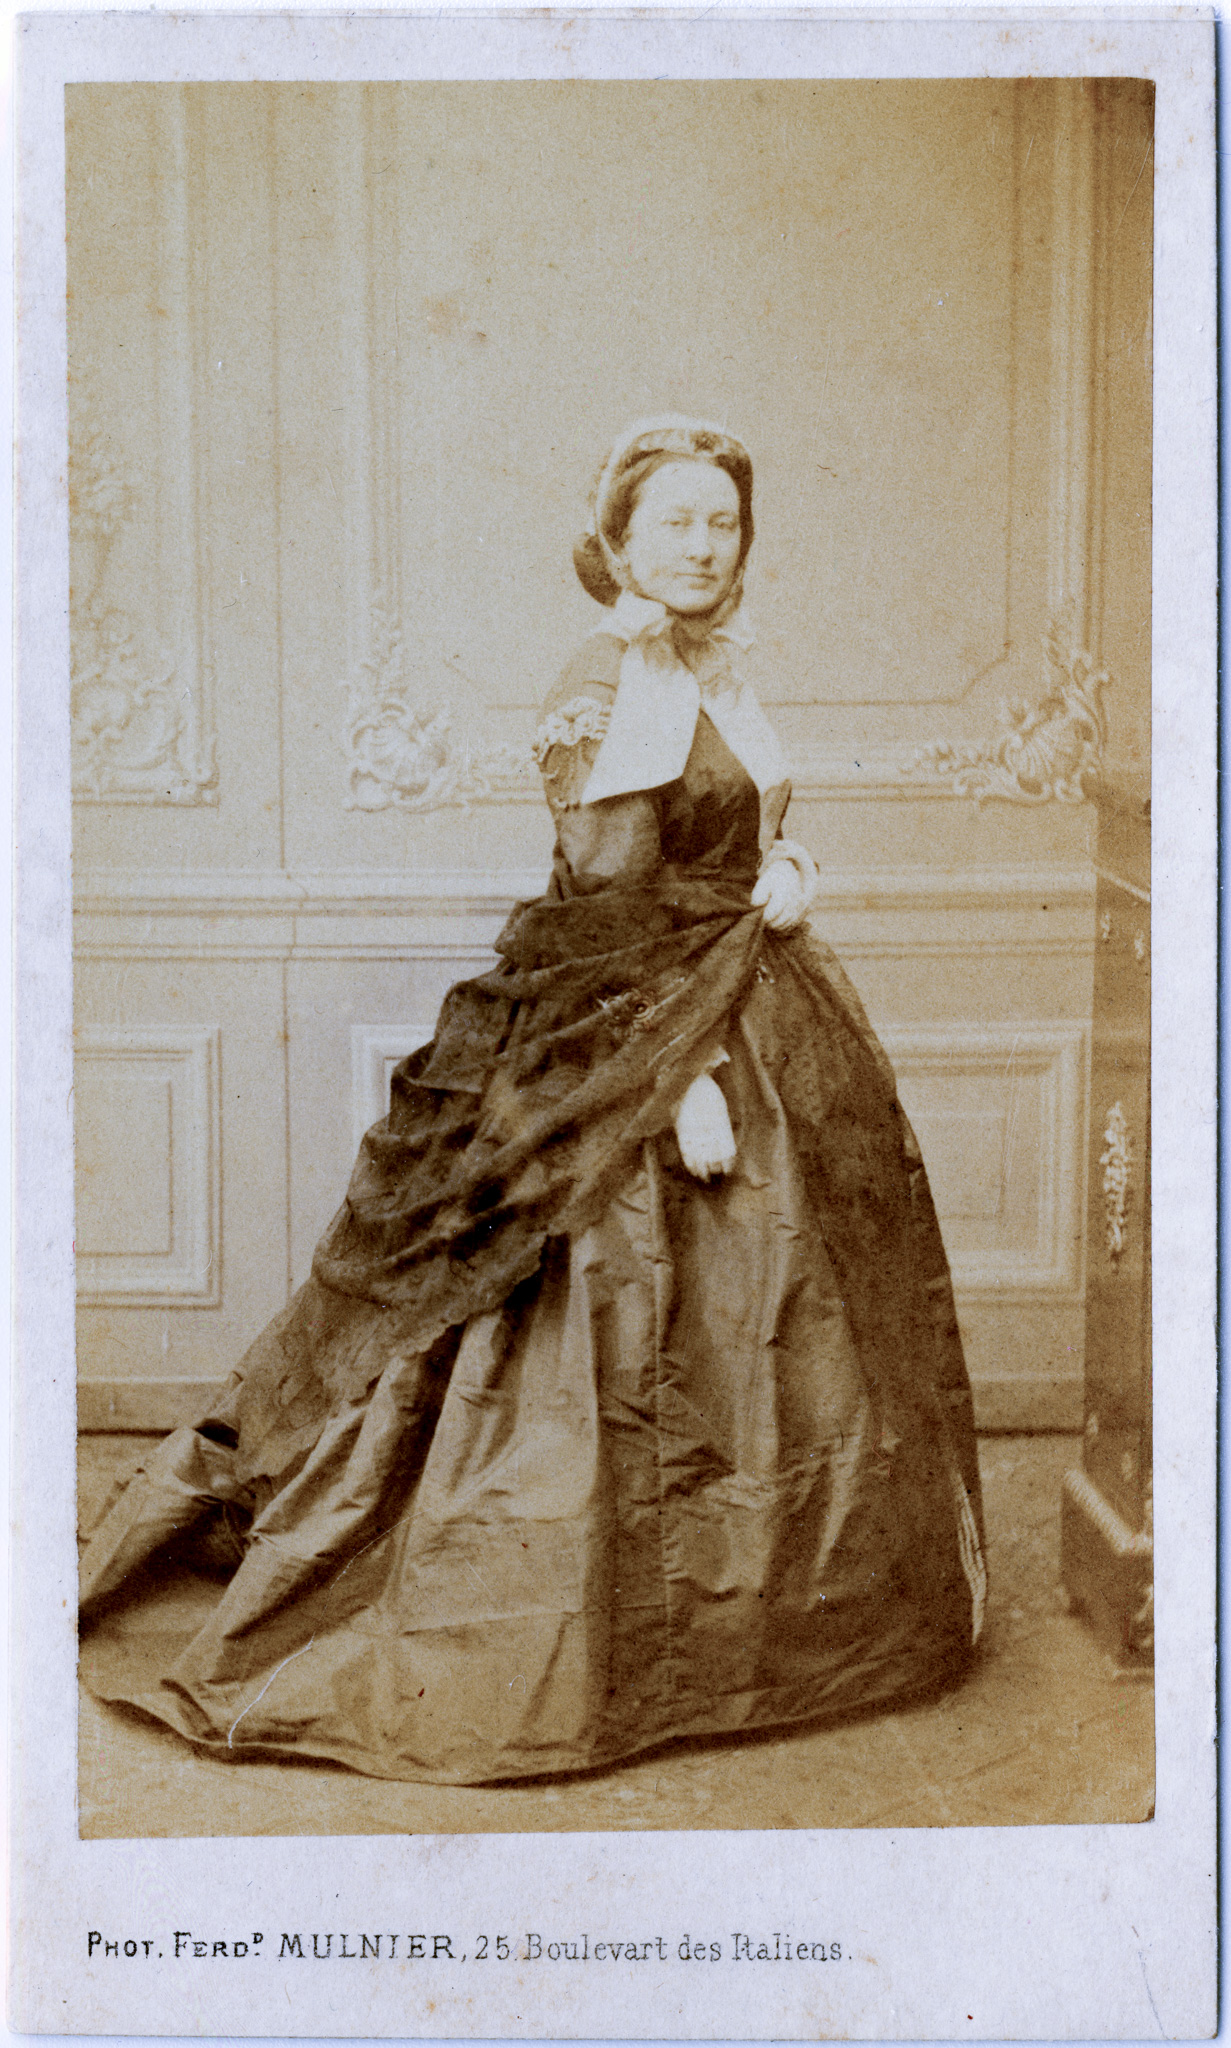 Hester (Runnels) Baker in France